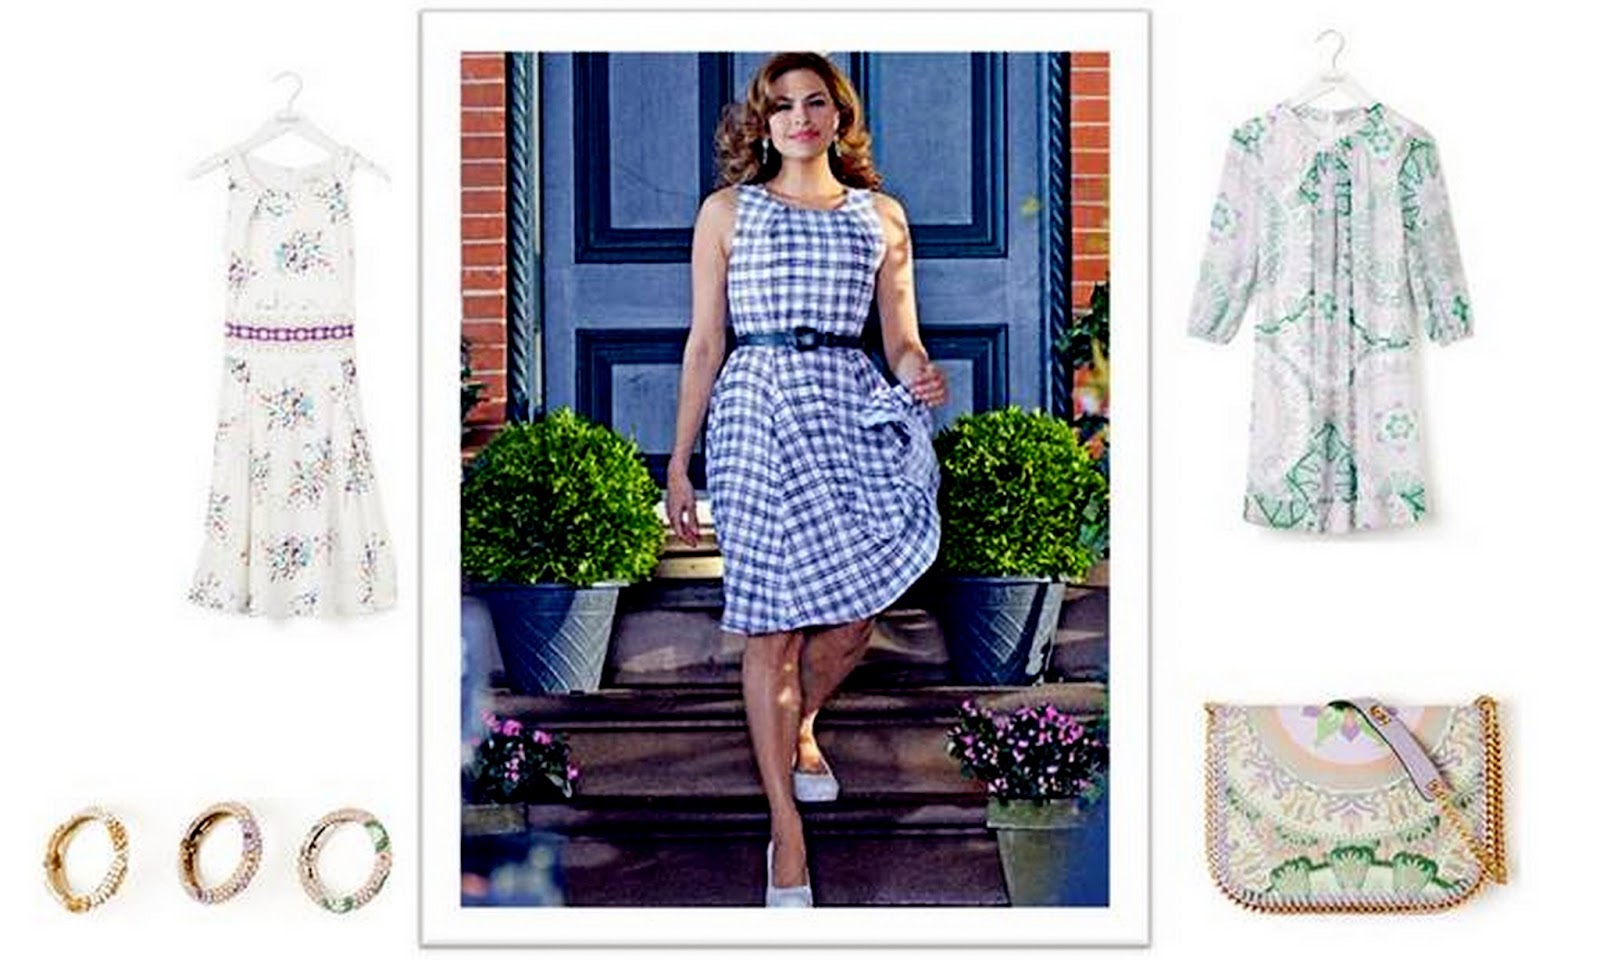 Eva Mendes Spring 2015 Collection is 'All About the Glamour'